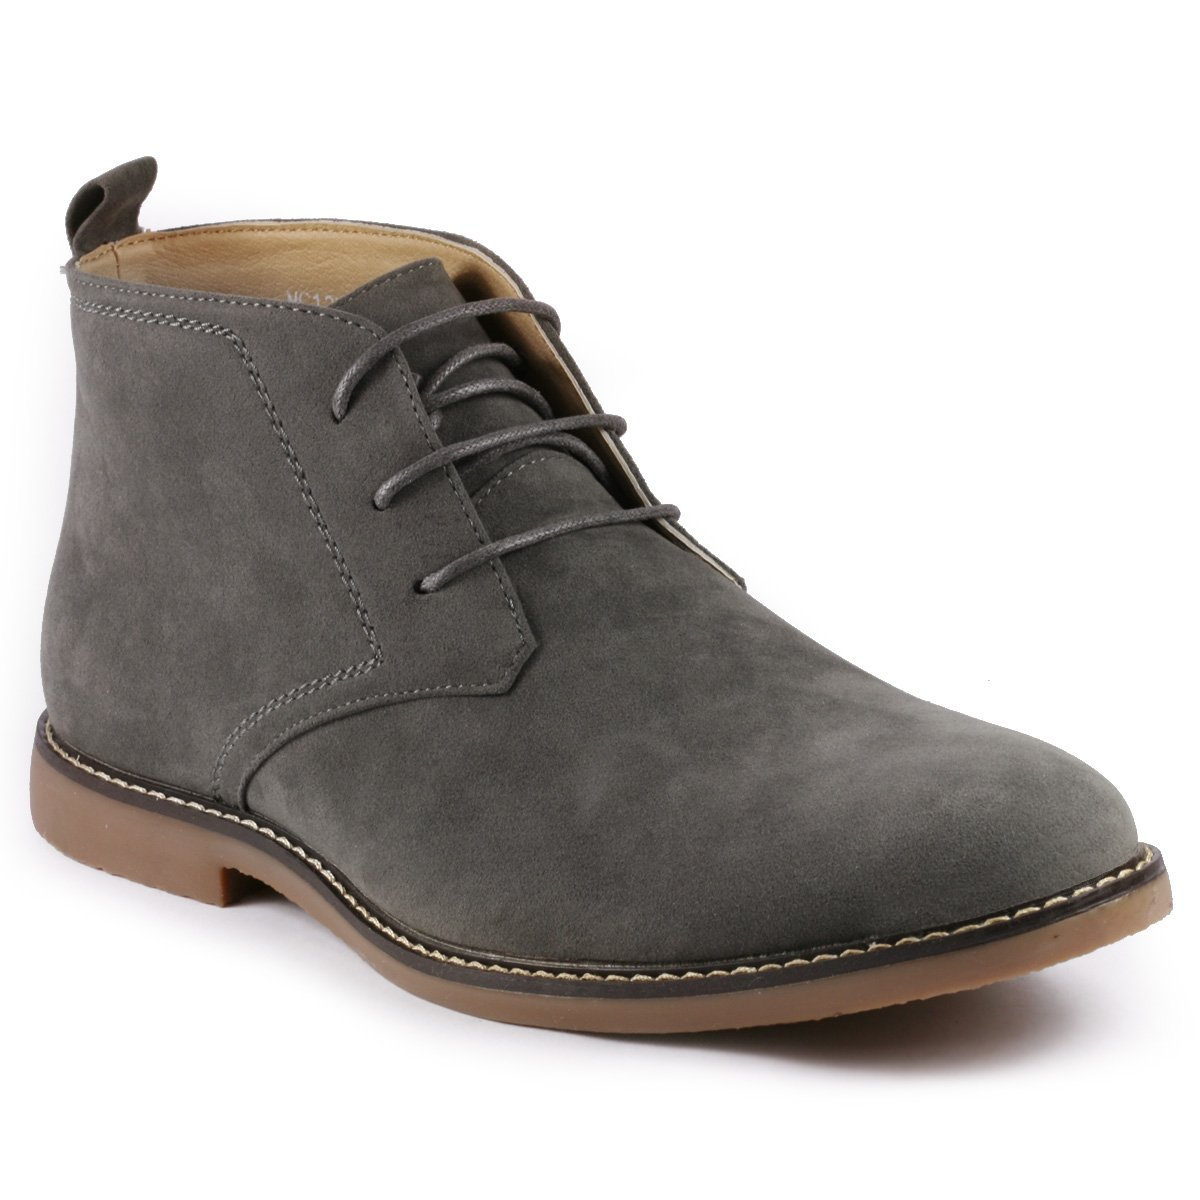 Metrocharm MC127 Men's Lace up Casual Fashion Ankle Chukka Boots (12 D(M) US, Gray)